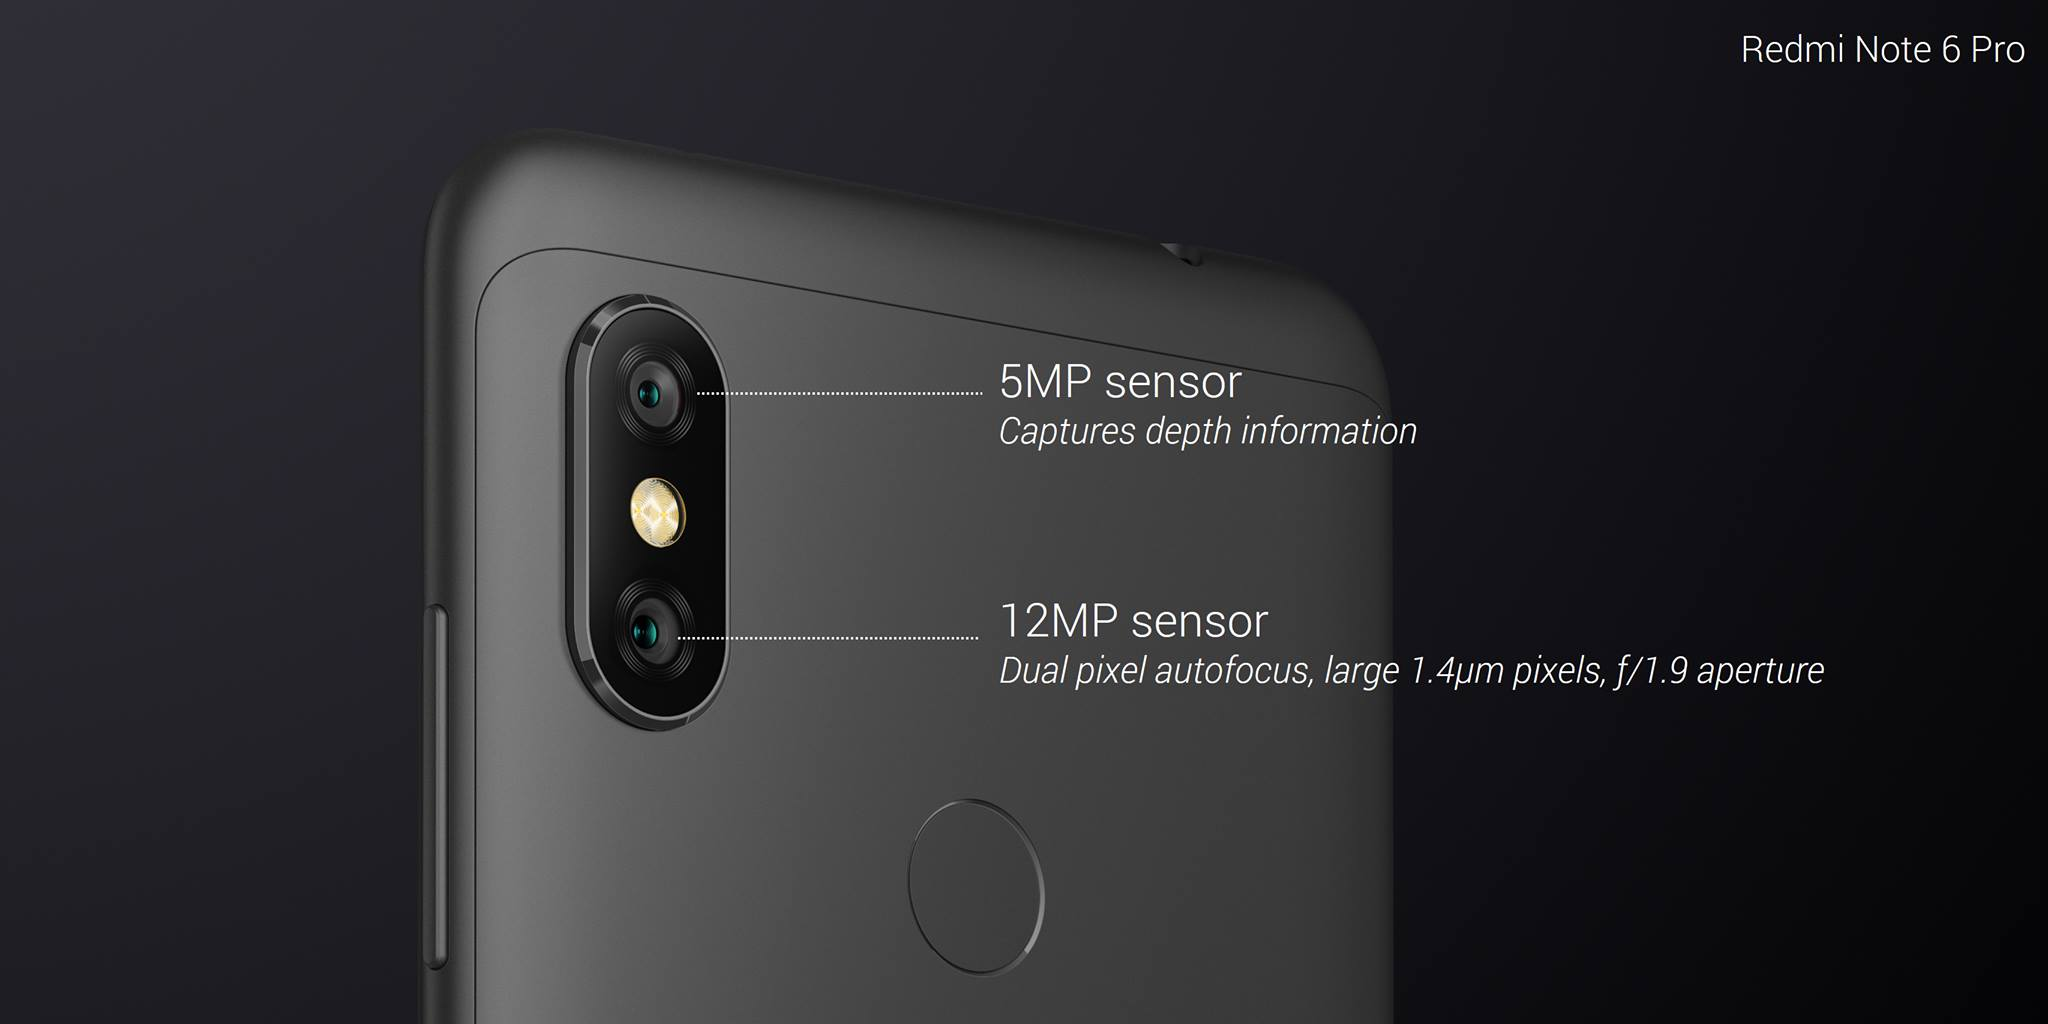 Xiaomi Redmi Note 6 Pro With 4 Cameras Officially Launched In 5 Ram Gb Internal 64 Rose Gold Also Powers The It Packs Kryo 260 Cpu And Adreno 509 Gpu Comes 4gb Of 64gb Expandable Storage